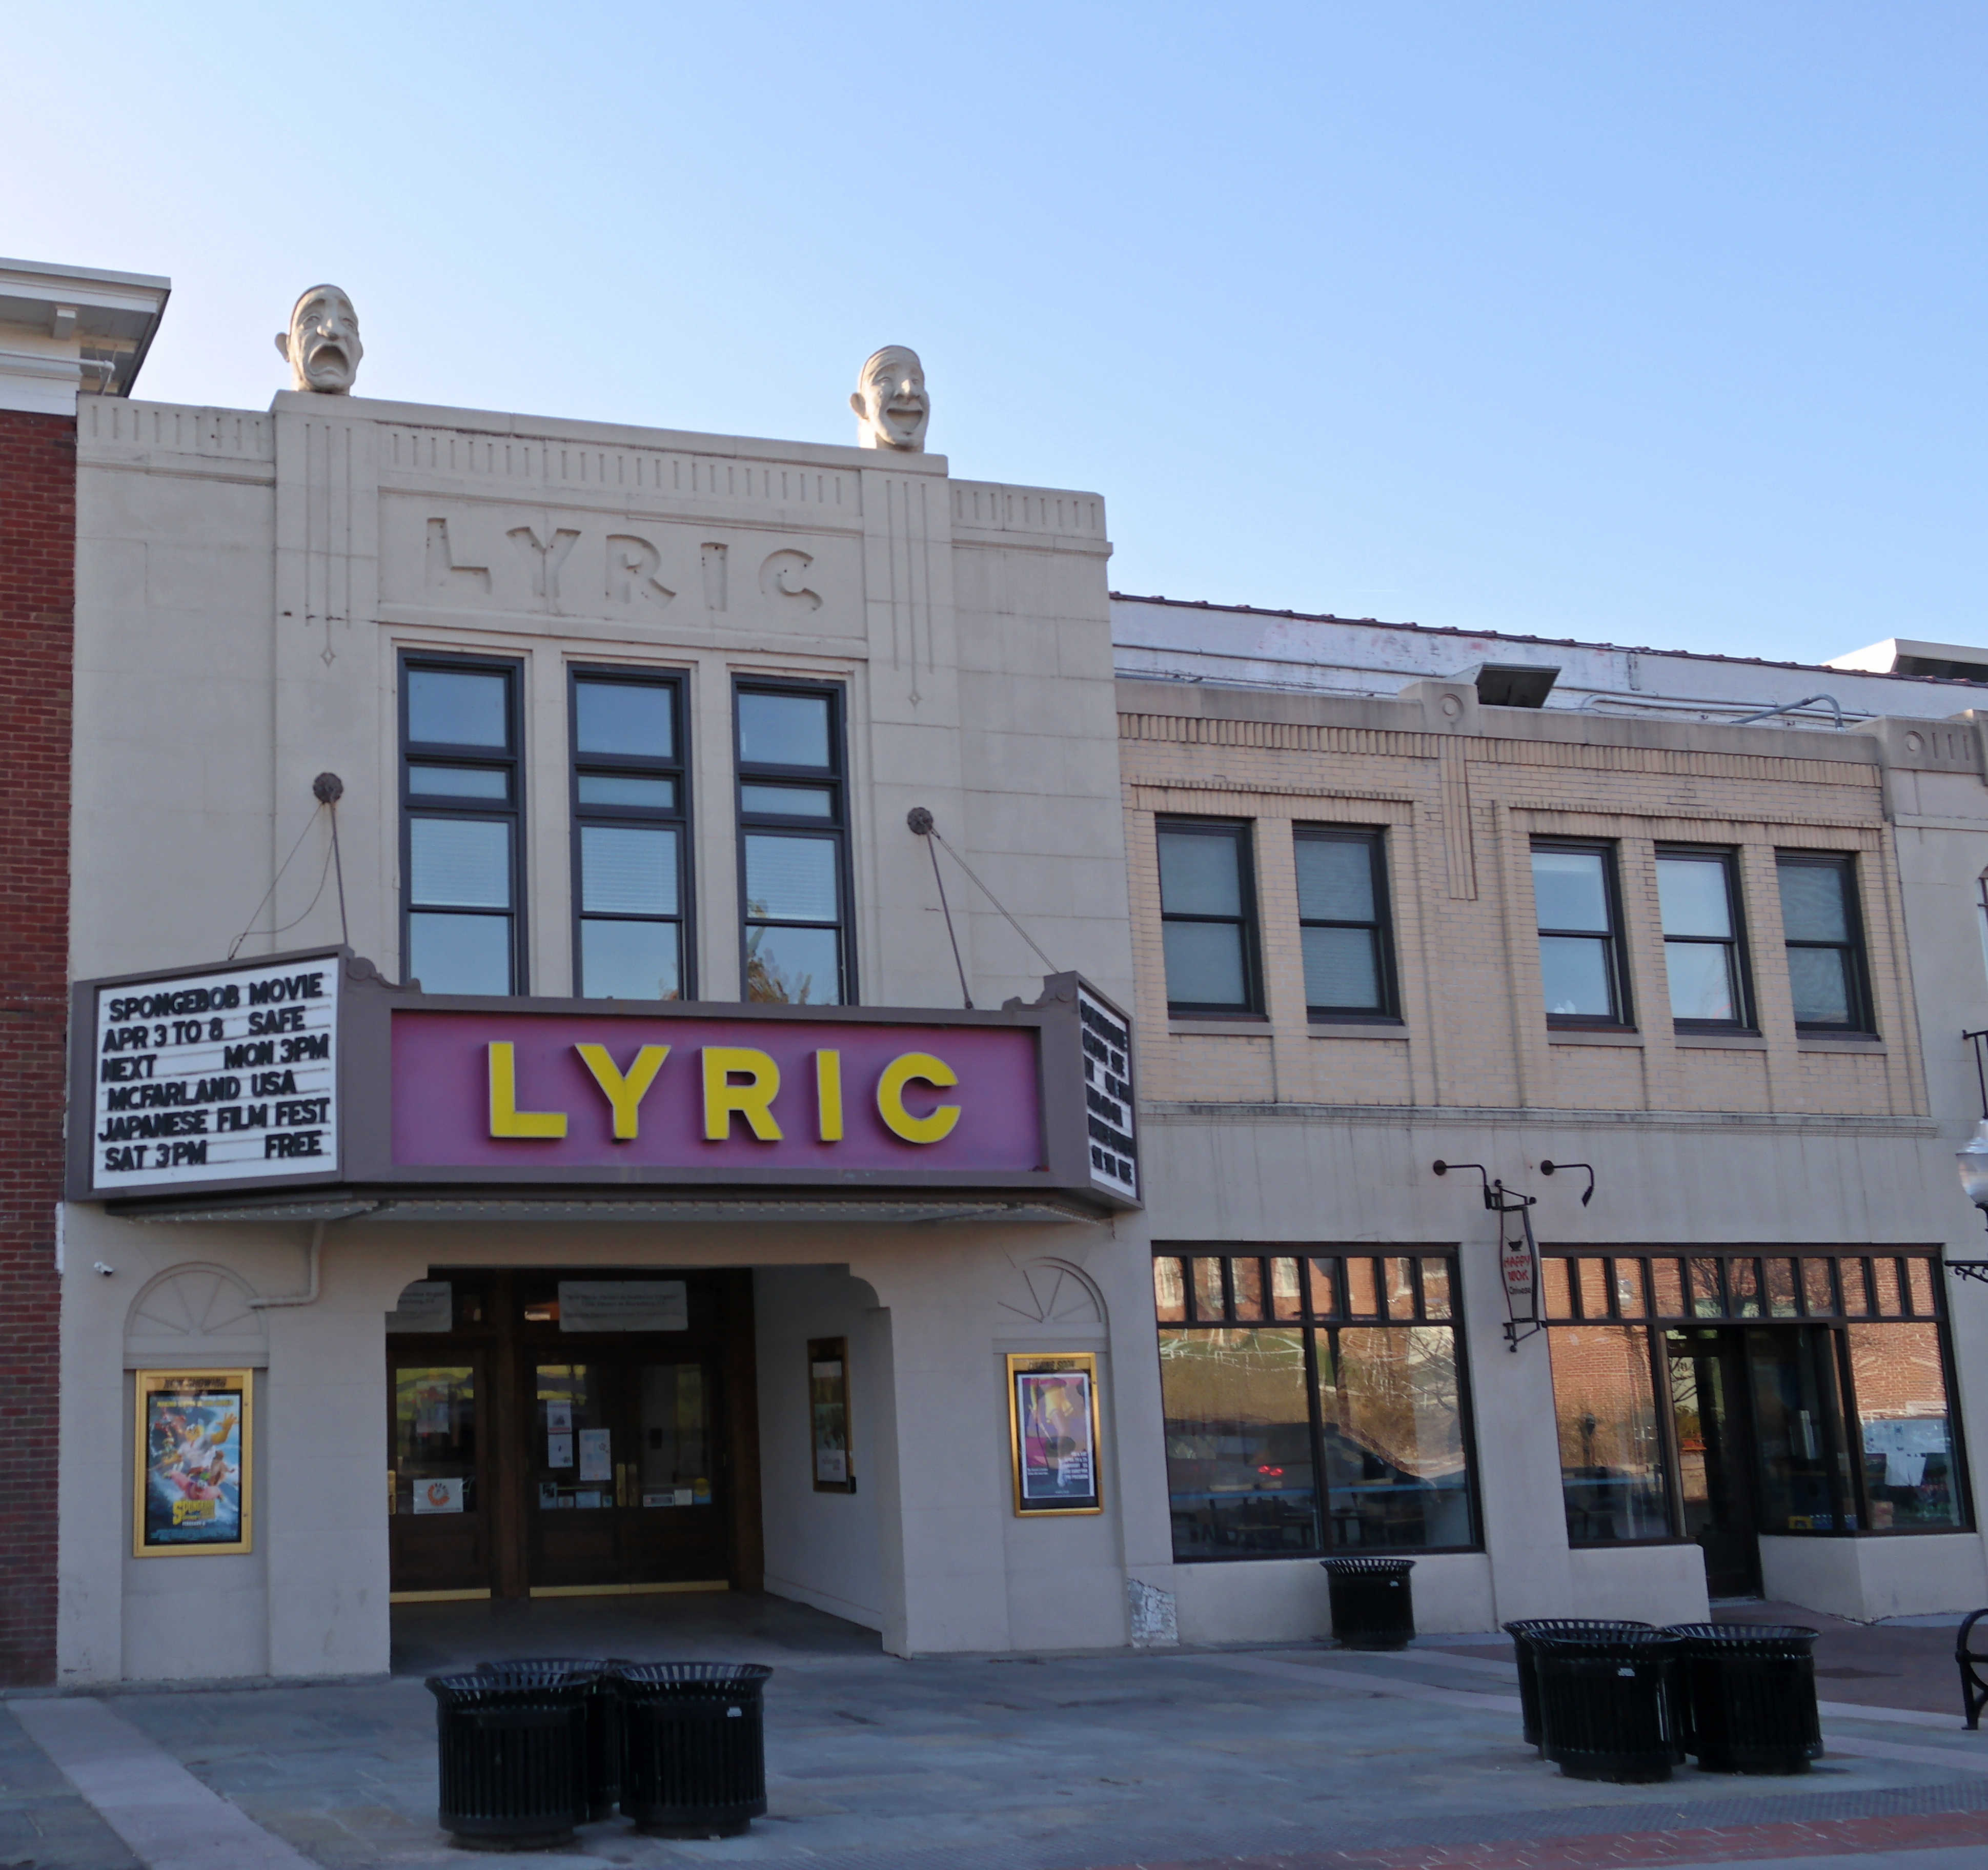 The Lyric Theater is located off of Main Street at 135 College Avenue.